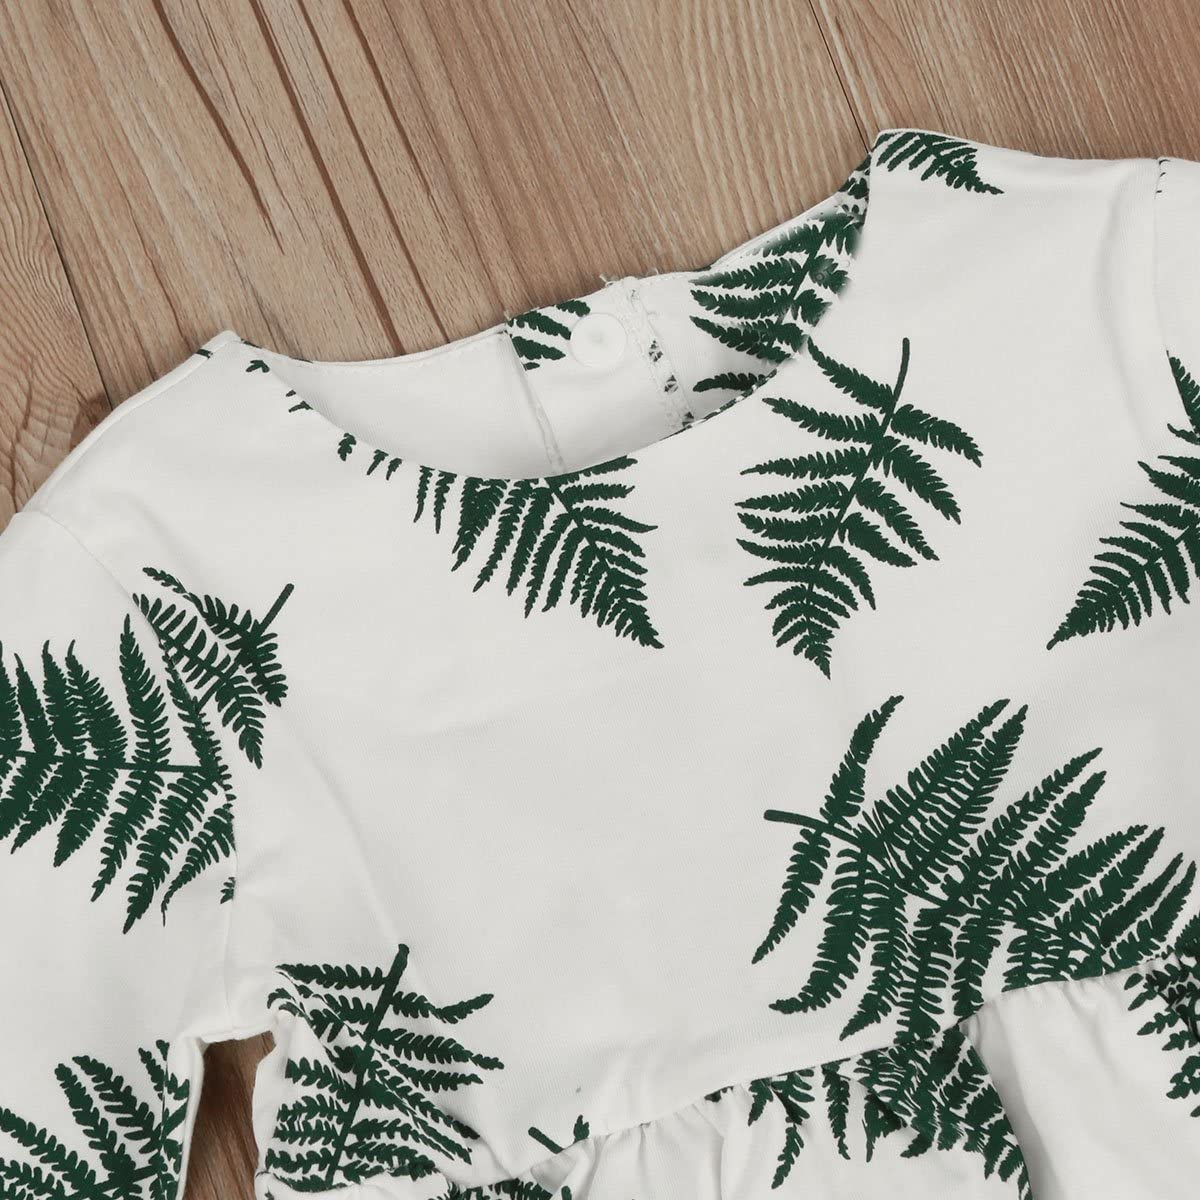 puseky Baby Girls Long Sleeves Leaves Print Casual Birthday Party Dress Clothes